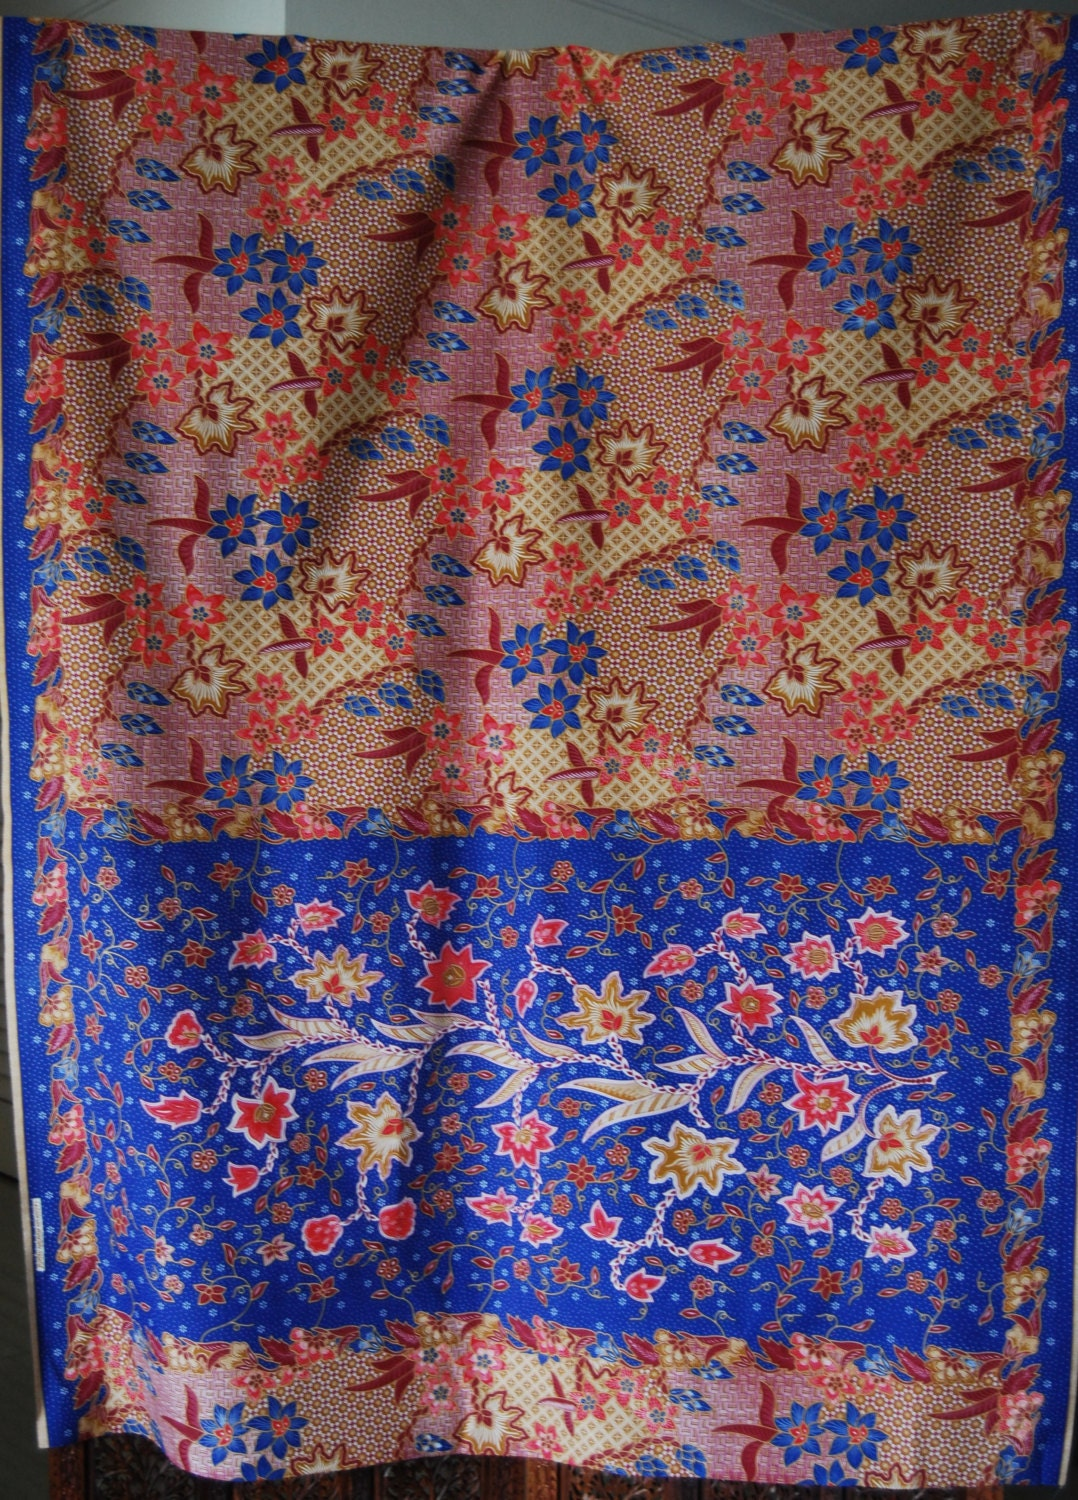 malaysian batik fabric blue and red from missiines on etsy studio. Black Bedroom Furniture Sets. Home Design Ideas